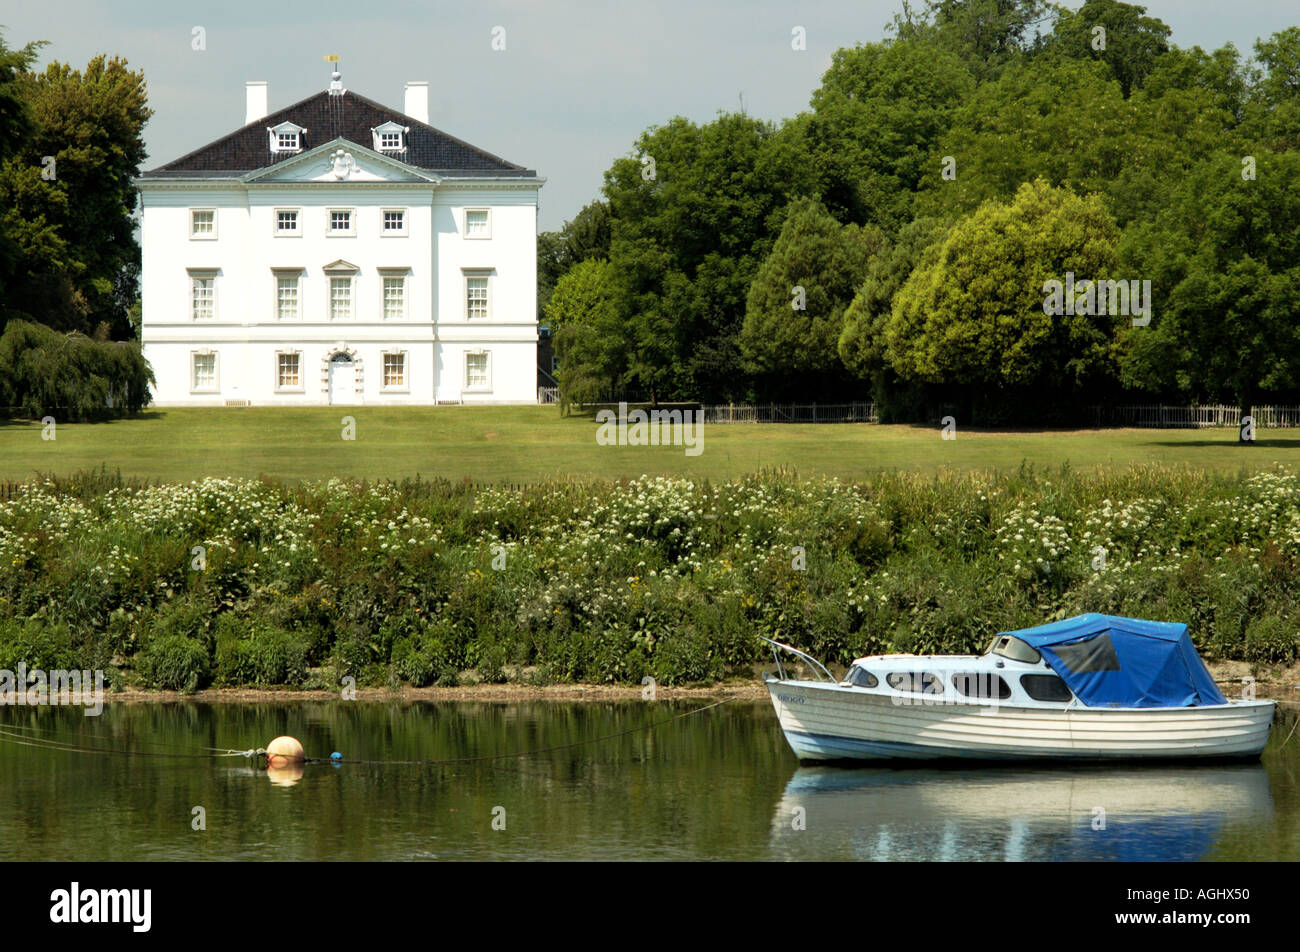 Marble Hill House and a boat Richmond Rd Twickenham, Surrey, UK Stock Photo